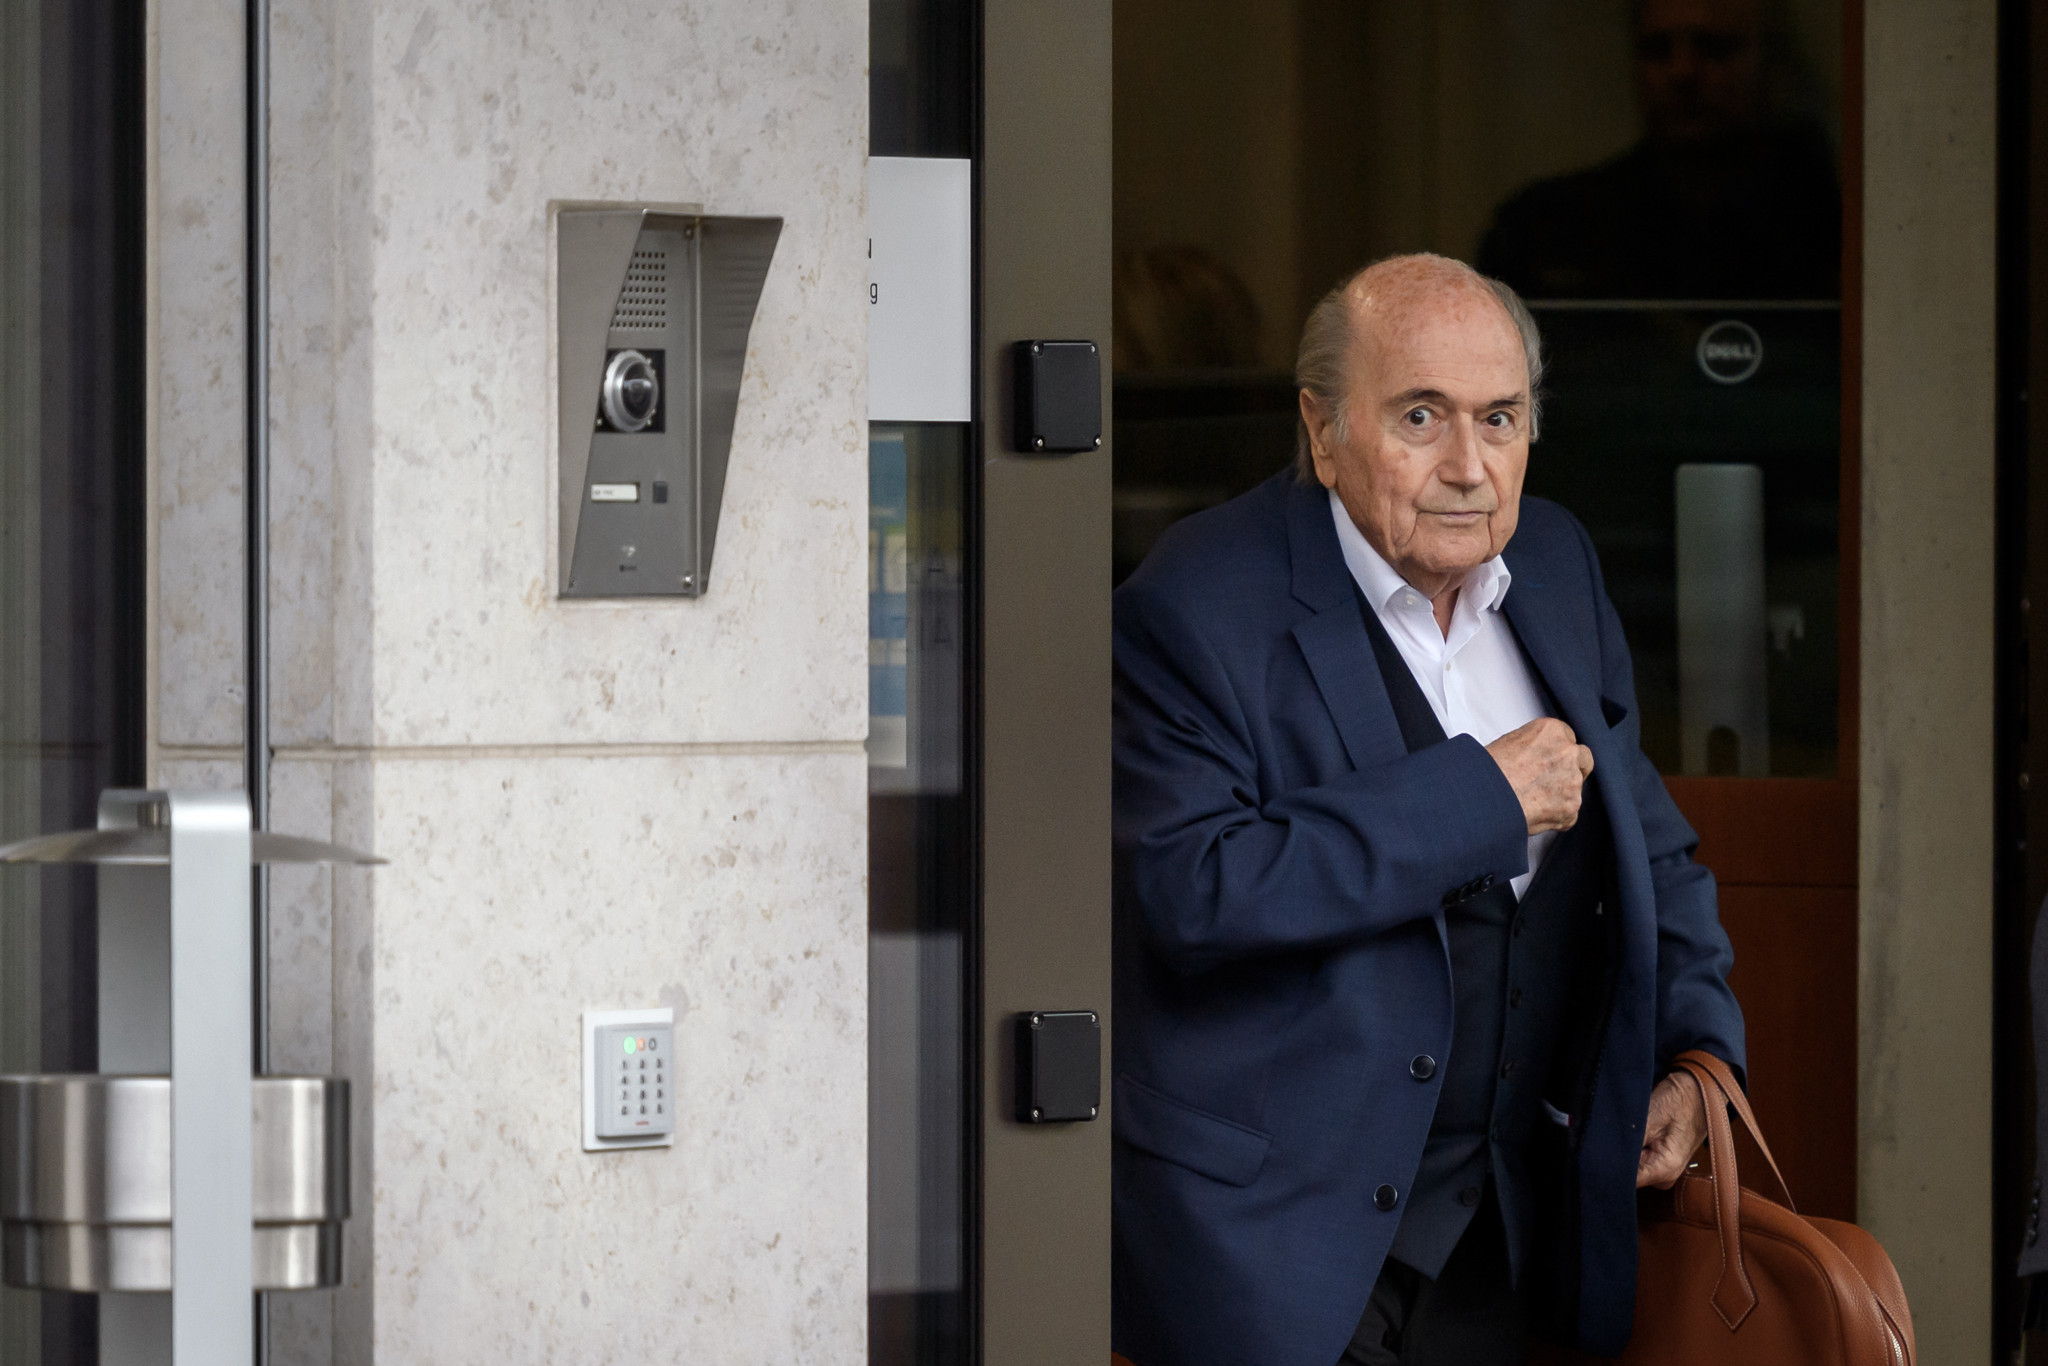 Former FIFA President Blatter faces questioning over Platini payment